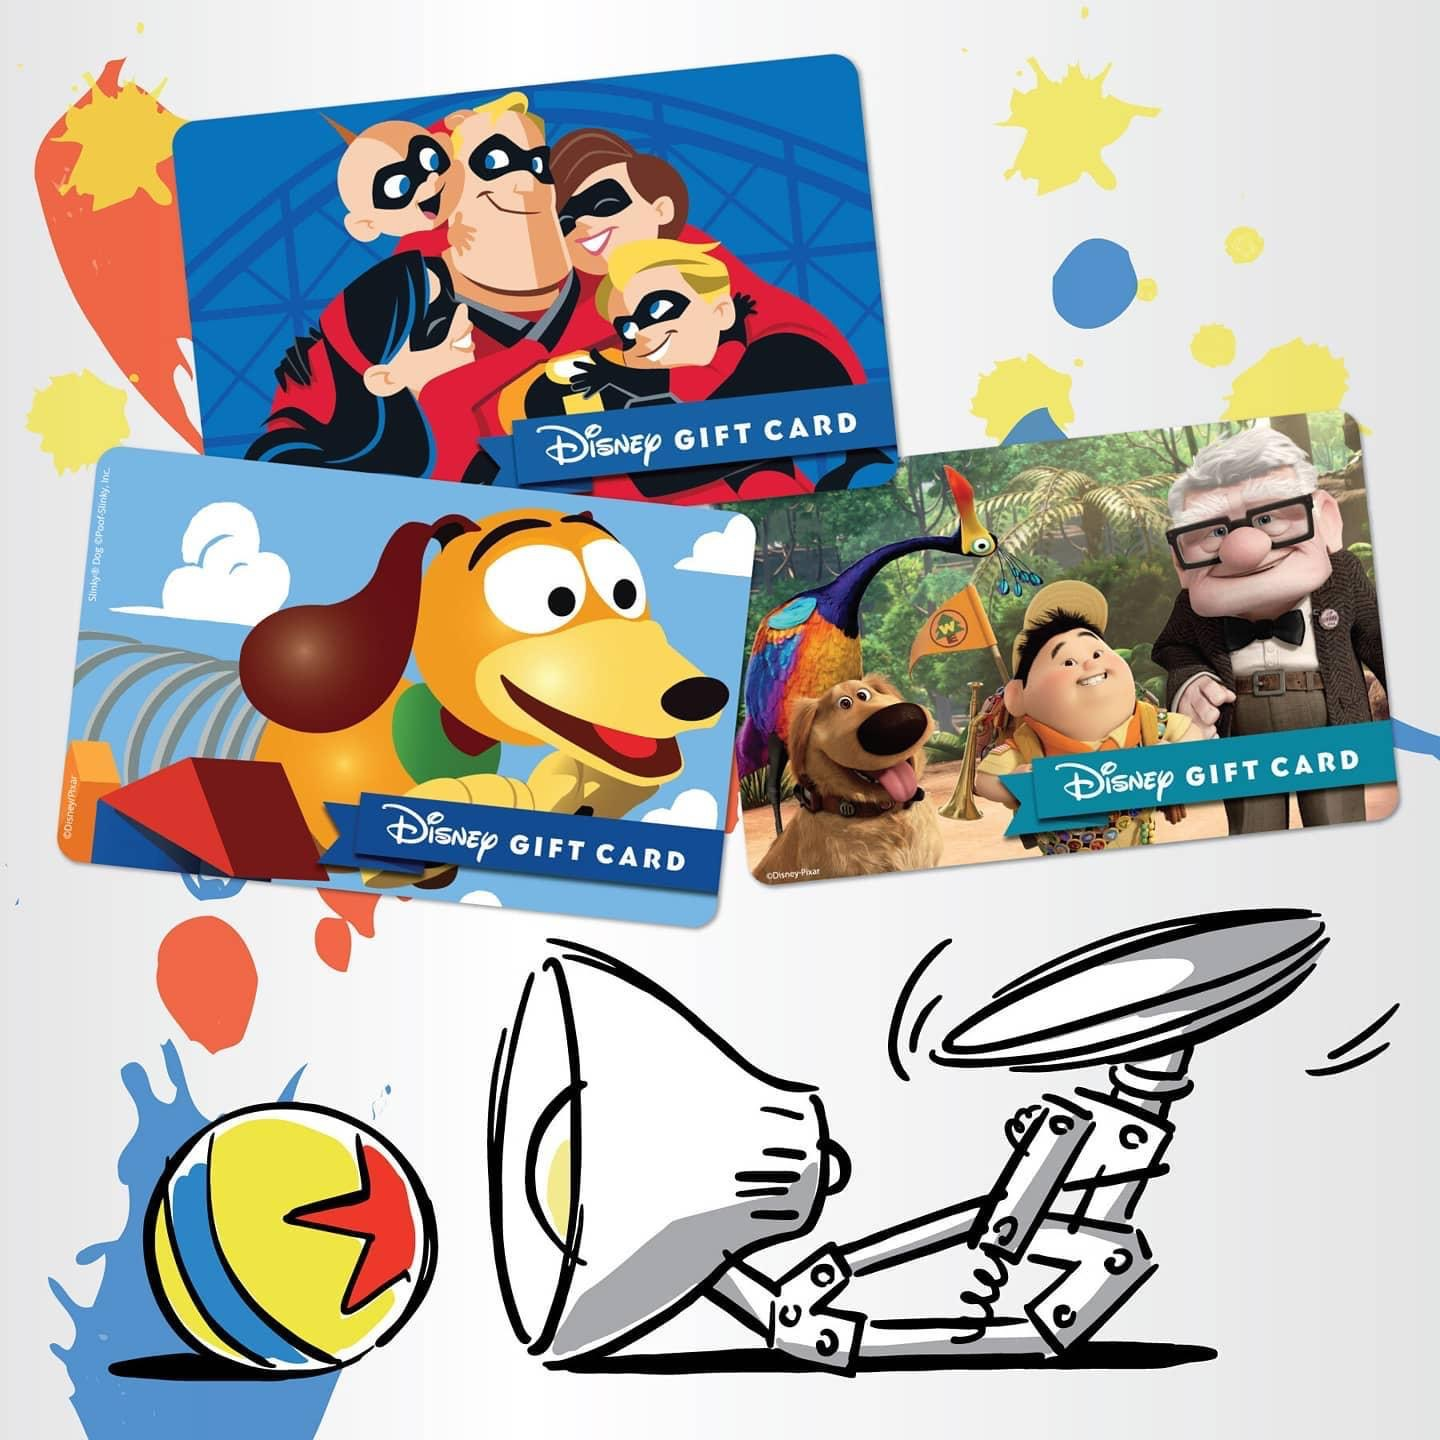 New Disney Gift Card Designs for Your Holiday Gift Giving from shopDisney! 13